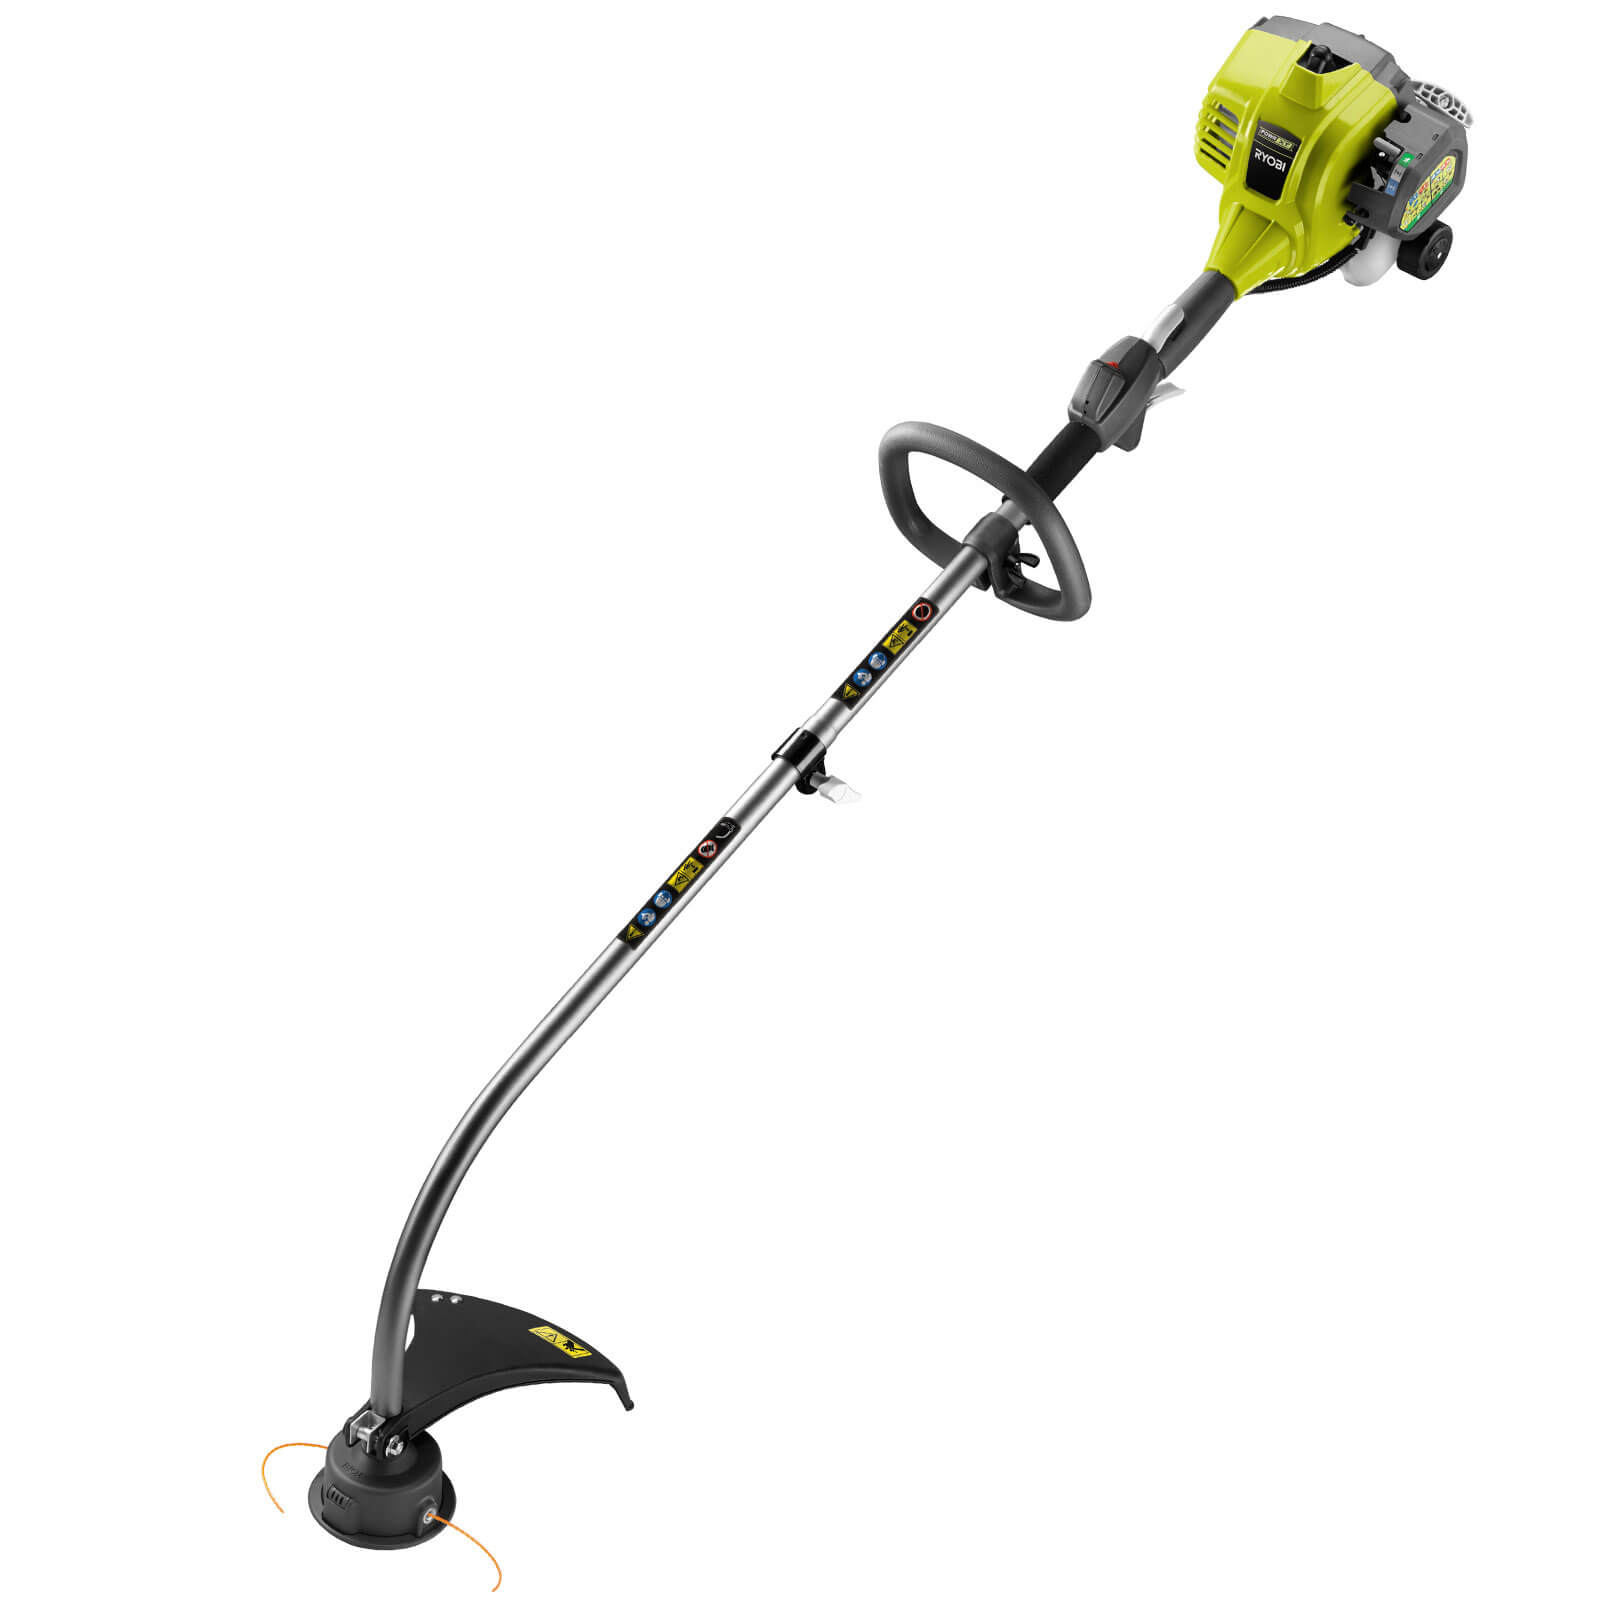 ryobi rlt254cdso petrol expand it grass trimmer 430mm review 9 1 10 rating. Black Bedroom Furniture Sets. Home Design Ideas